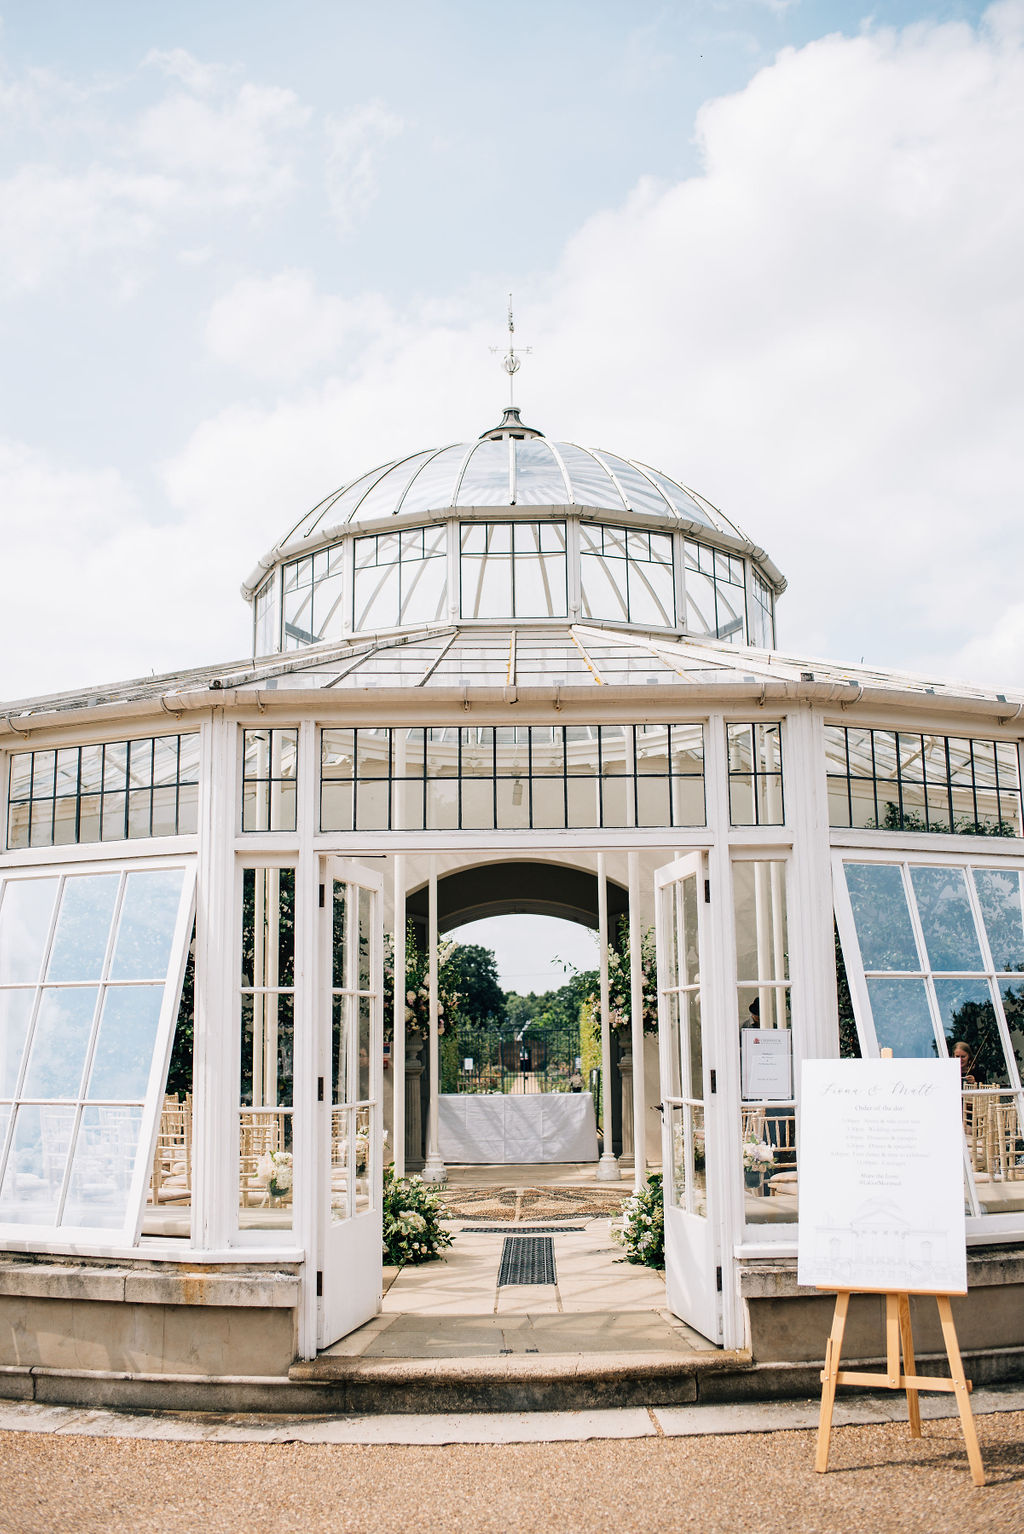 Summer wedding in the conservatory at Chiswick House, London | Sugar Plum Bakes